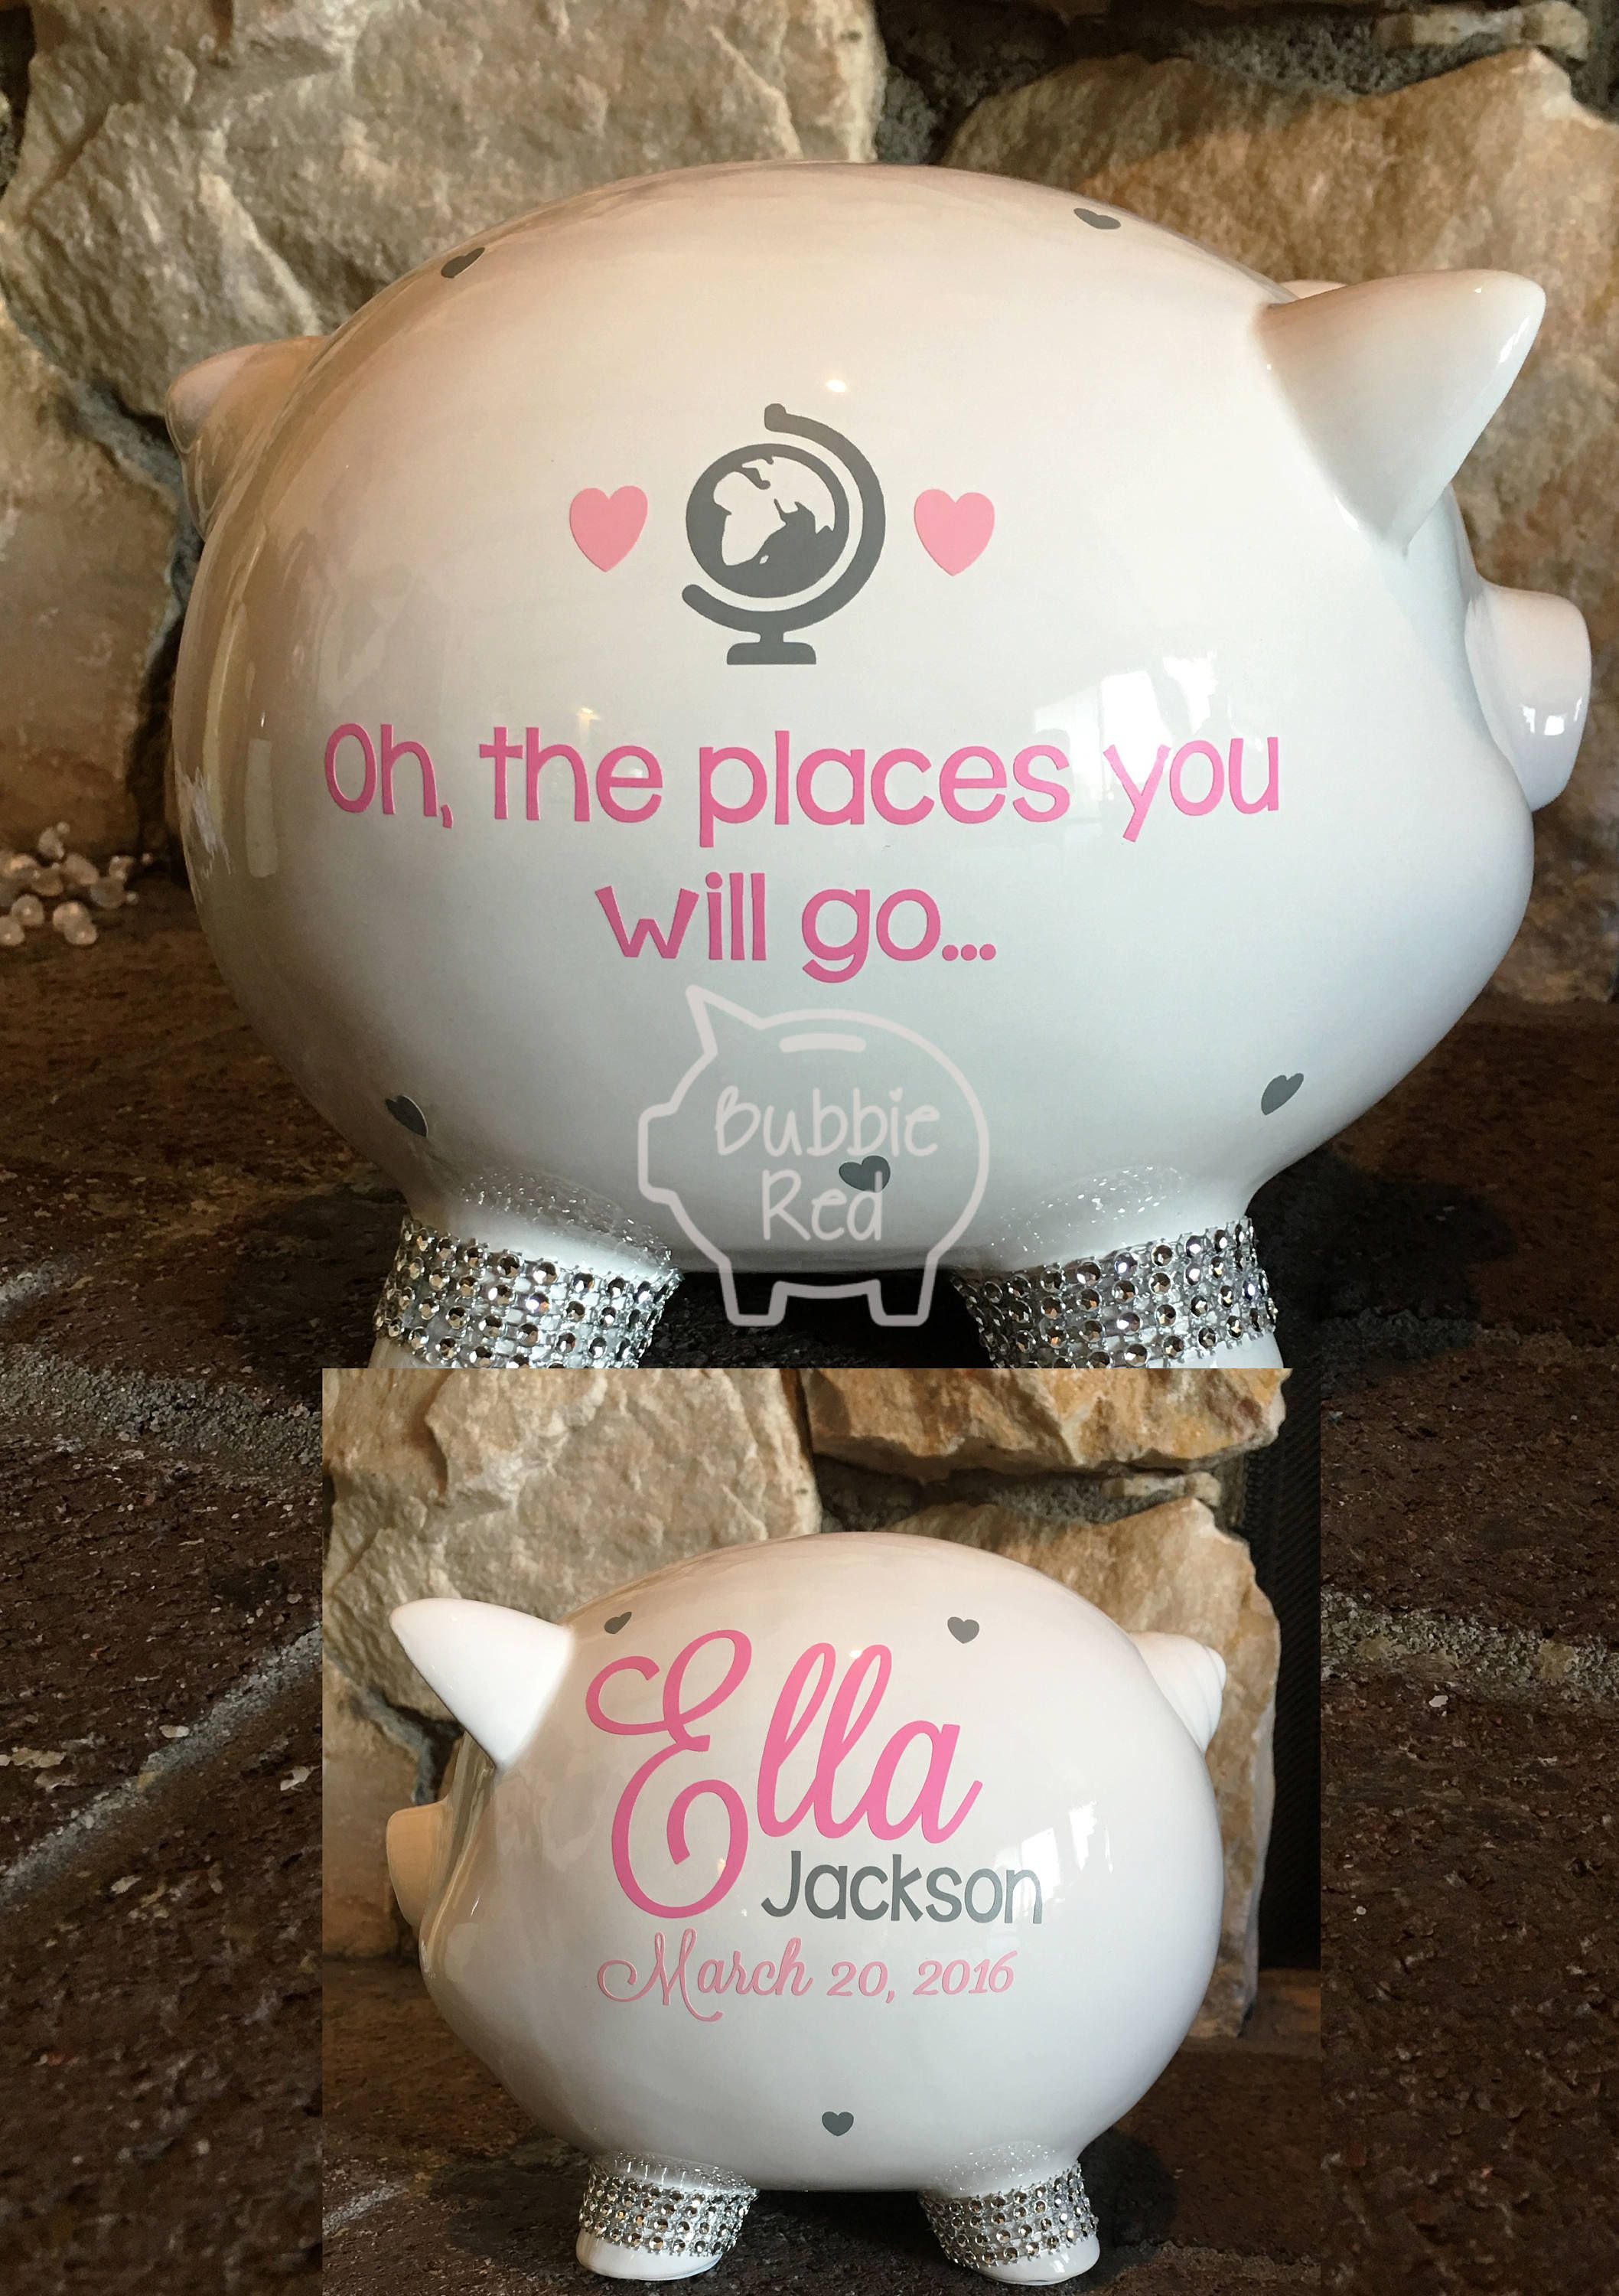 Dr Seuss Personalized Piggy Bank Oh The Places You Ll Go Baby Boy Piggy Bank Baby Girl Piggy Bank By Bub Piggy Bank Diy Baby Christmas Gifts Diy Baby Gifts